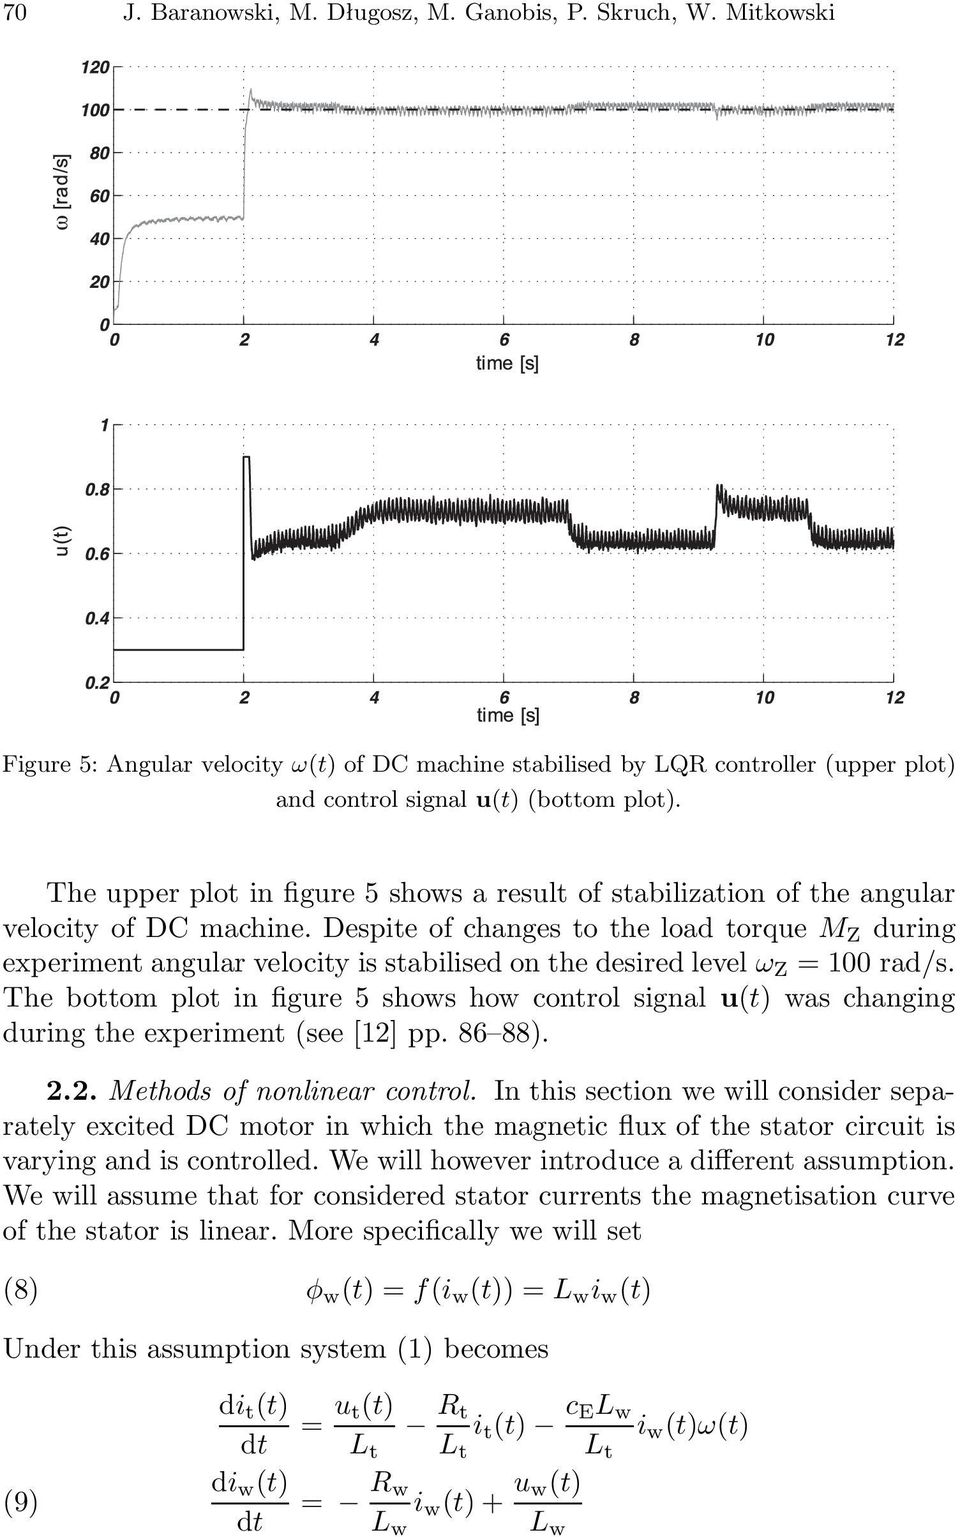 Despite of changes to the load torque M Z during experiment angular velocity is stabilised on the desired level ω Z = 100 rad/s.